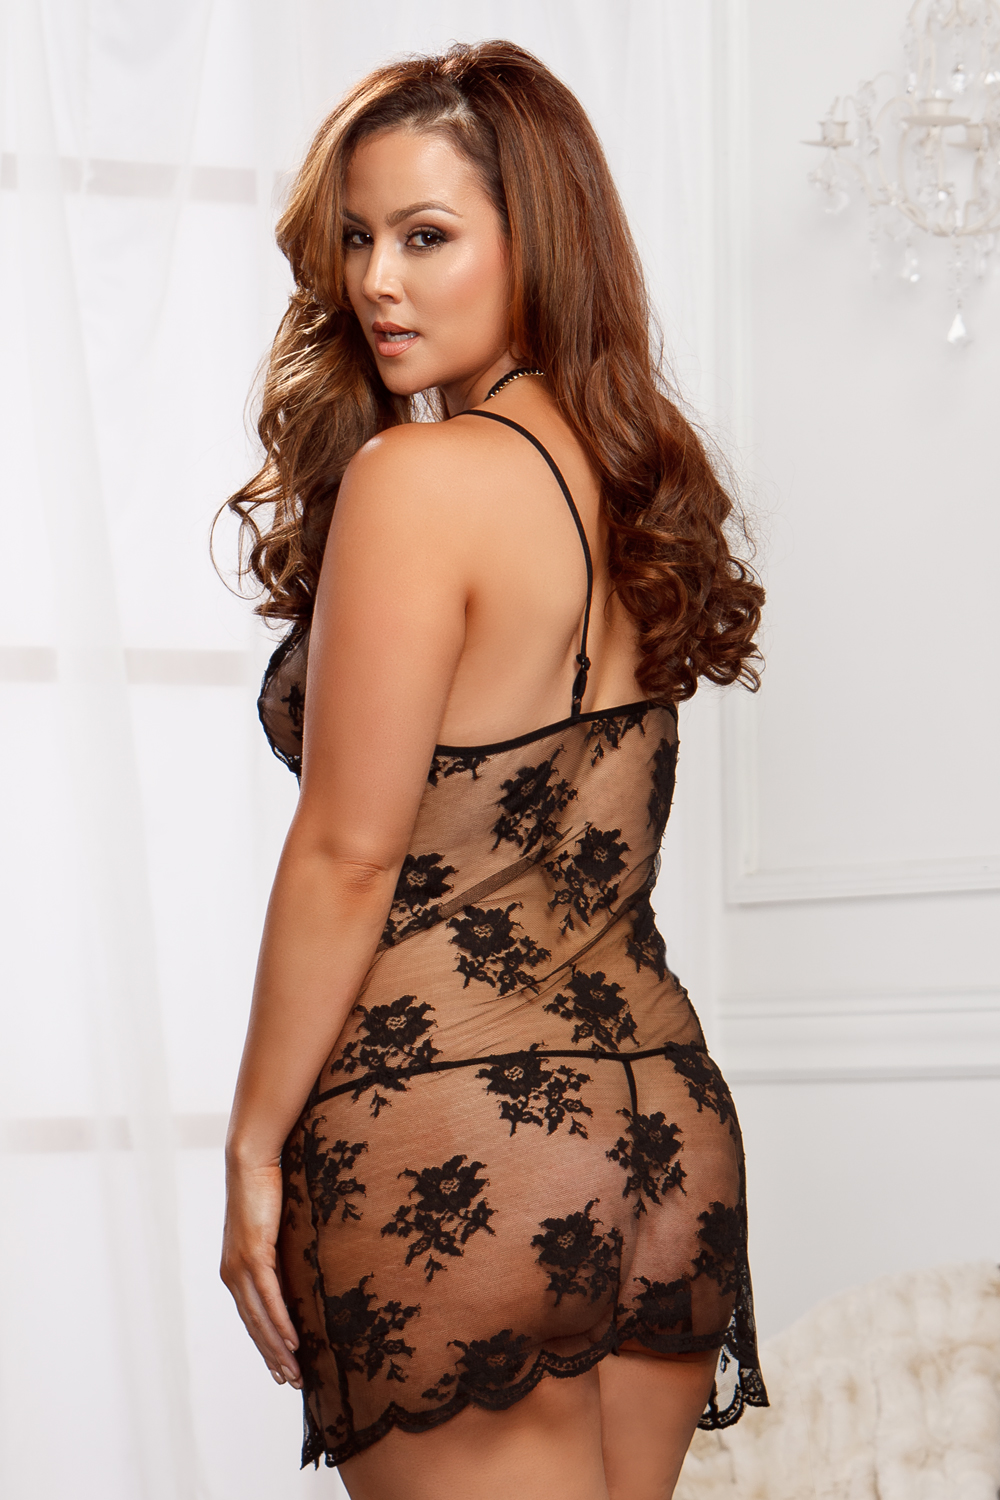 Victoria Lace Mini Dress and G-string